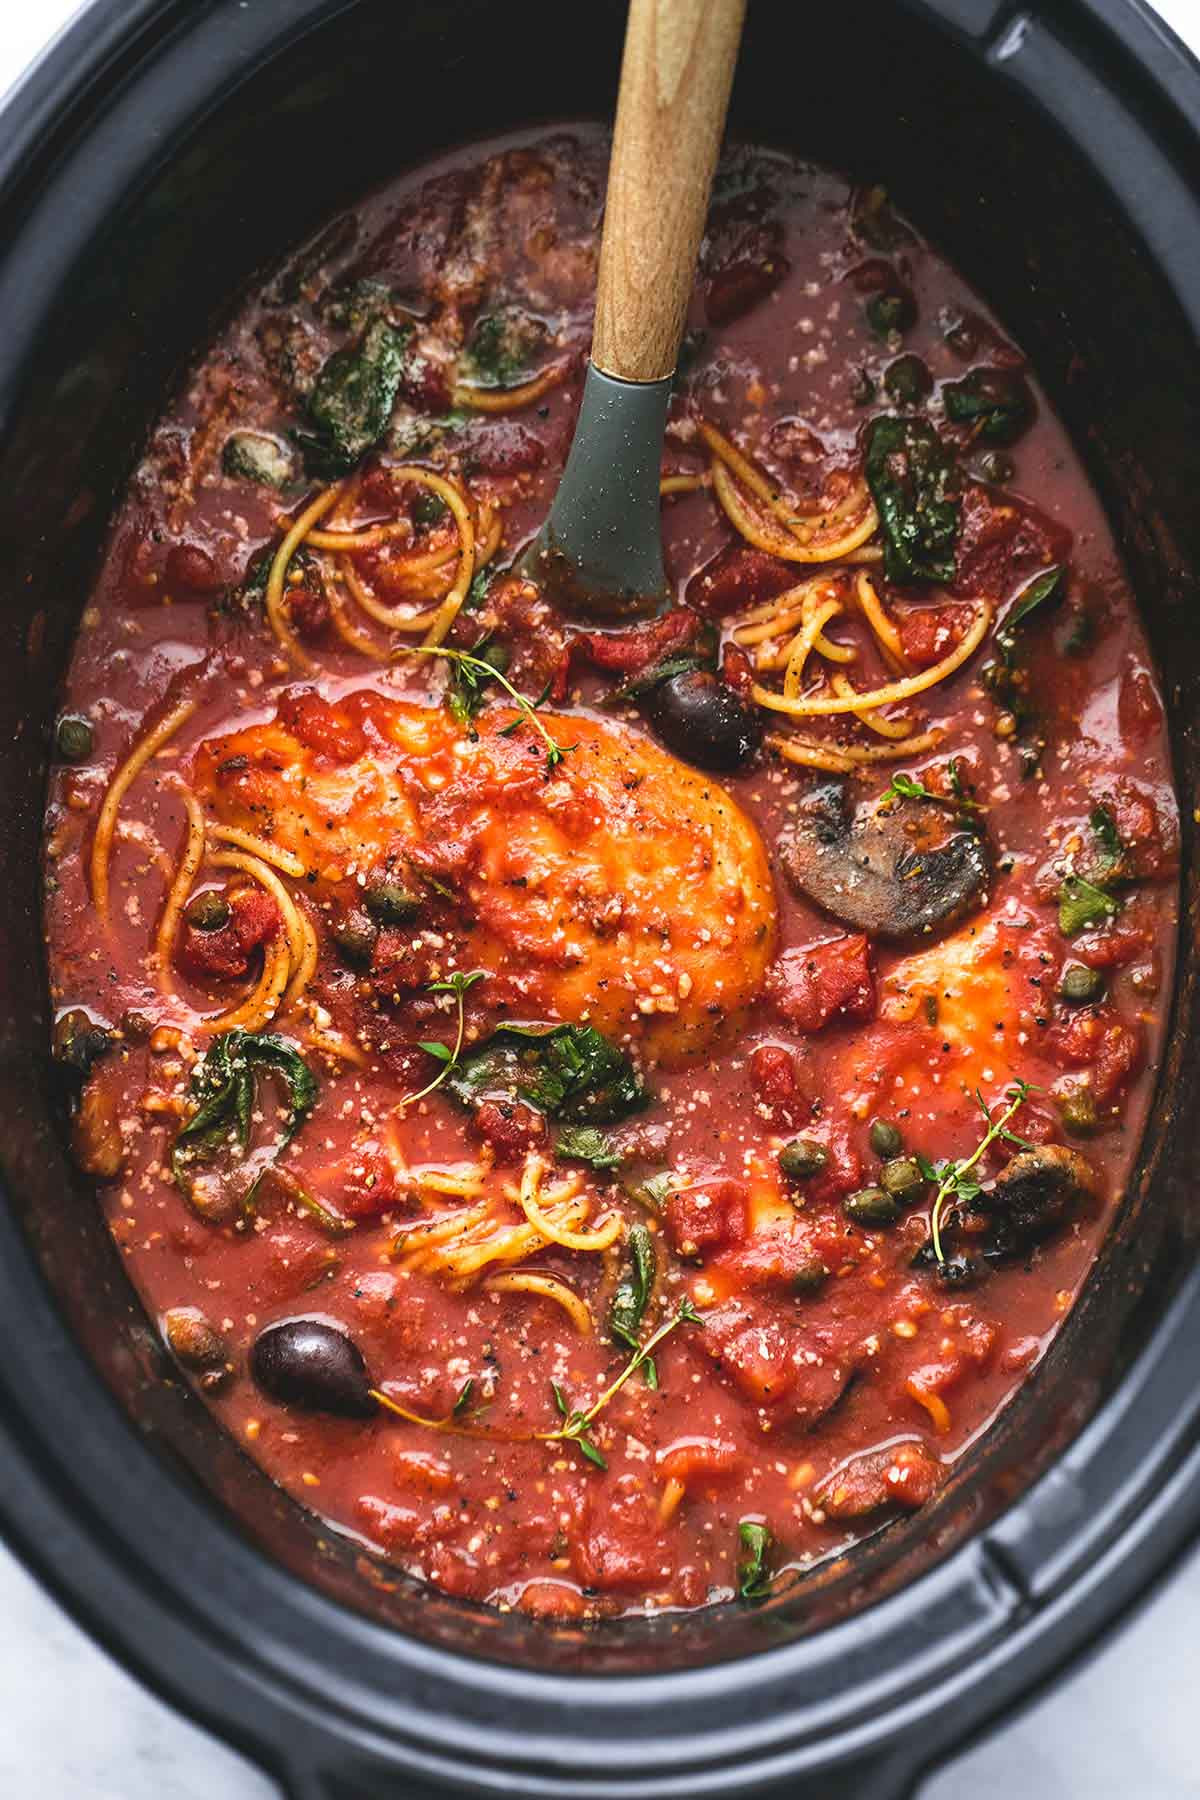 Healthy Slow Cooker Dinner Recipes  Healthy Slow Cooker Chicken Cacciatore